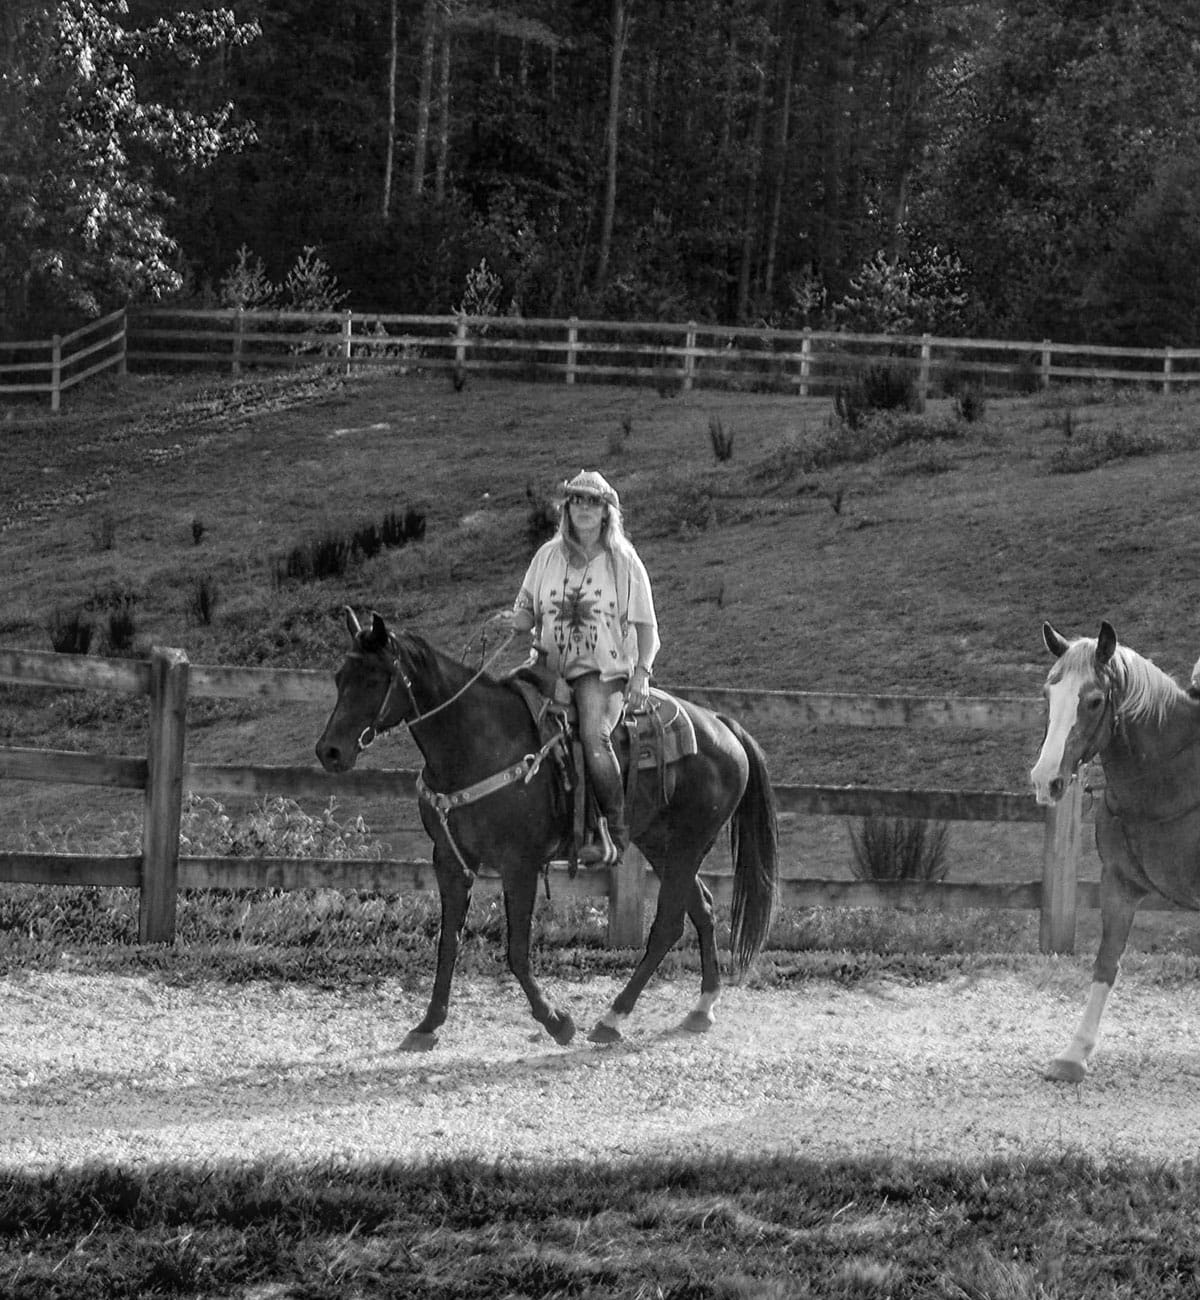 Woman riding horse at The Equestrian Center